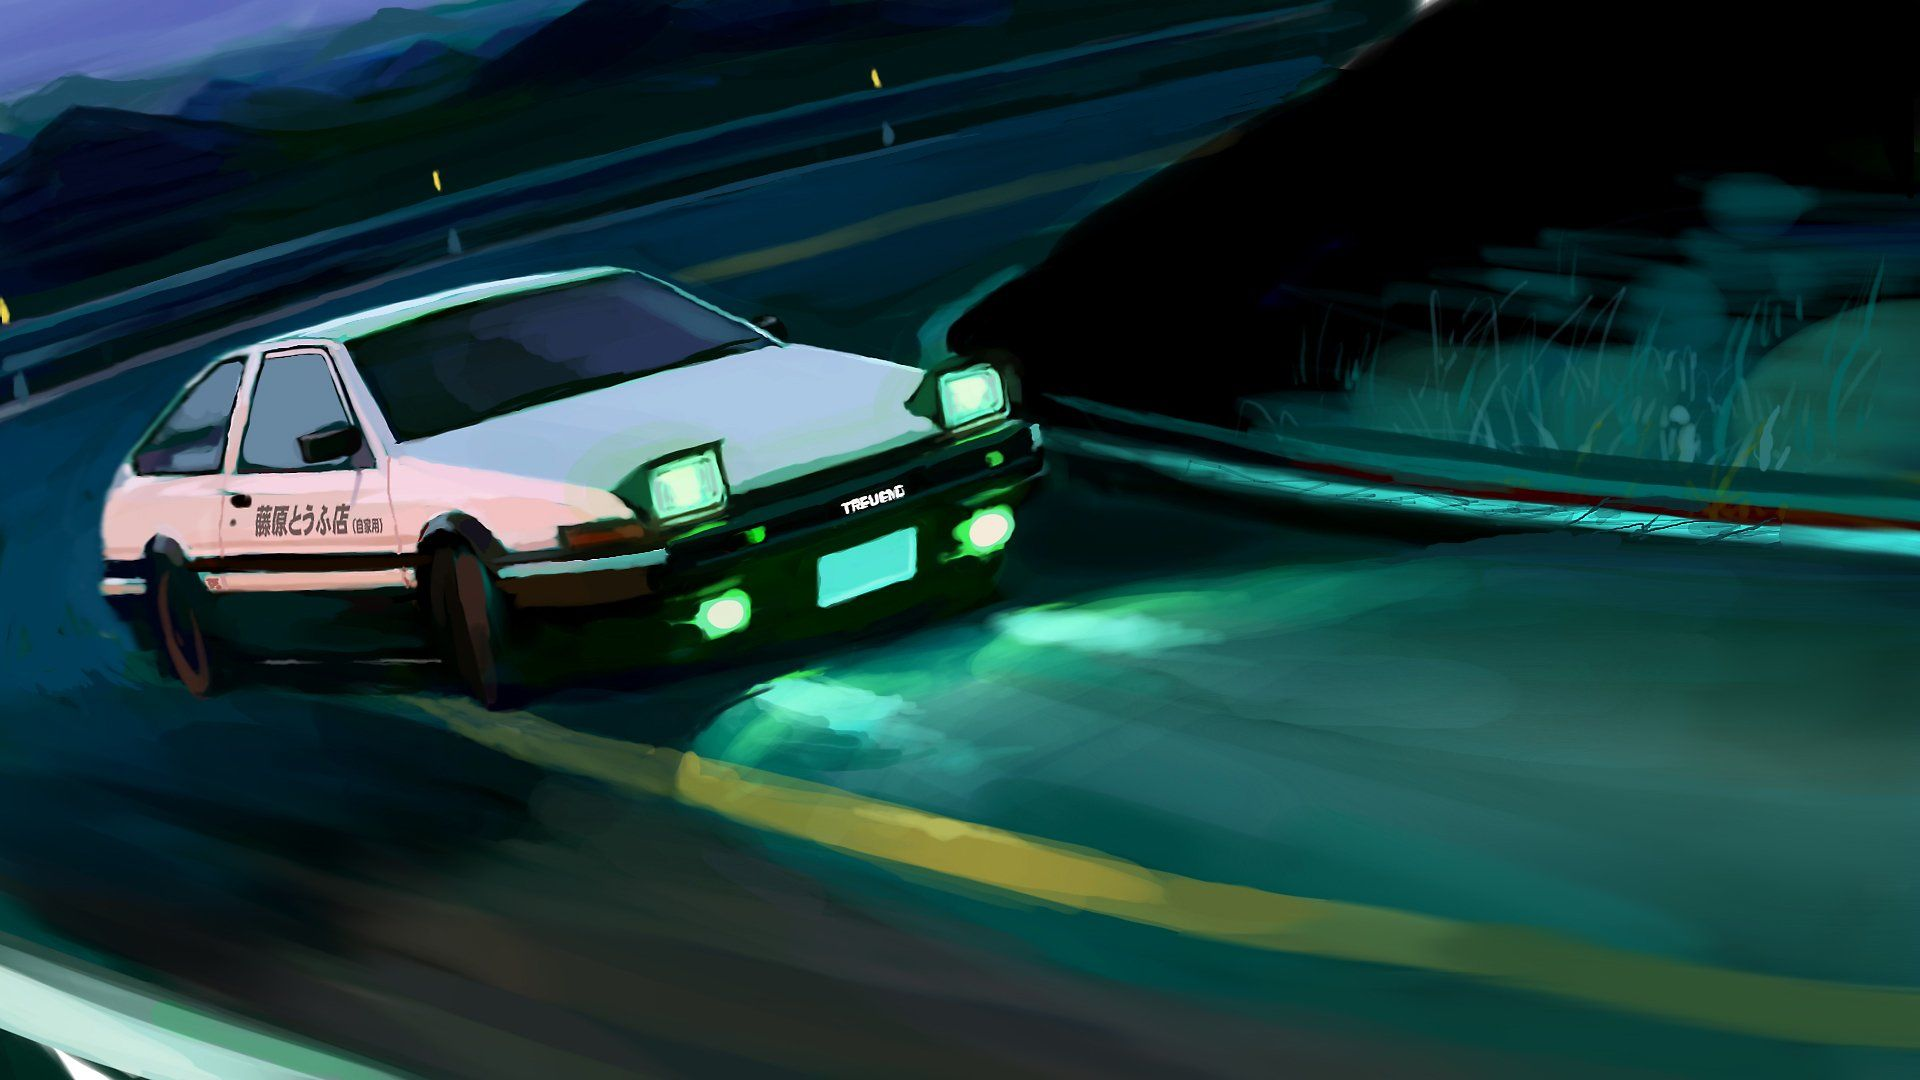 Anime Initial D Final Stage Toyota AE86 Toyota Trueno Wallpaper 1920x1080